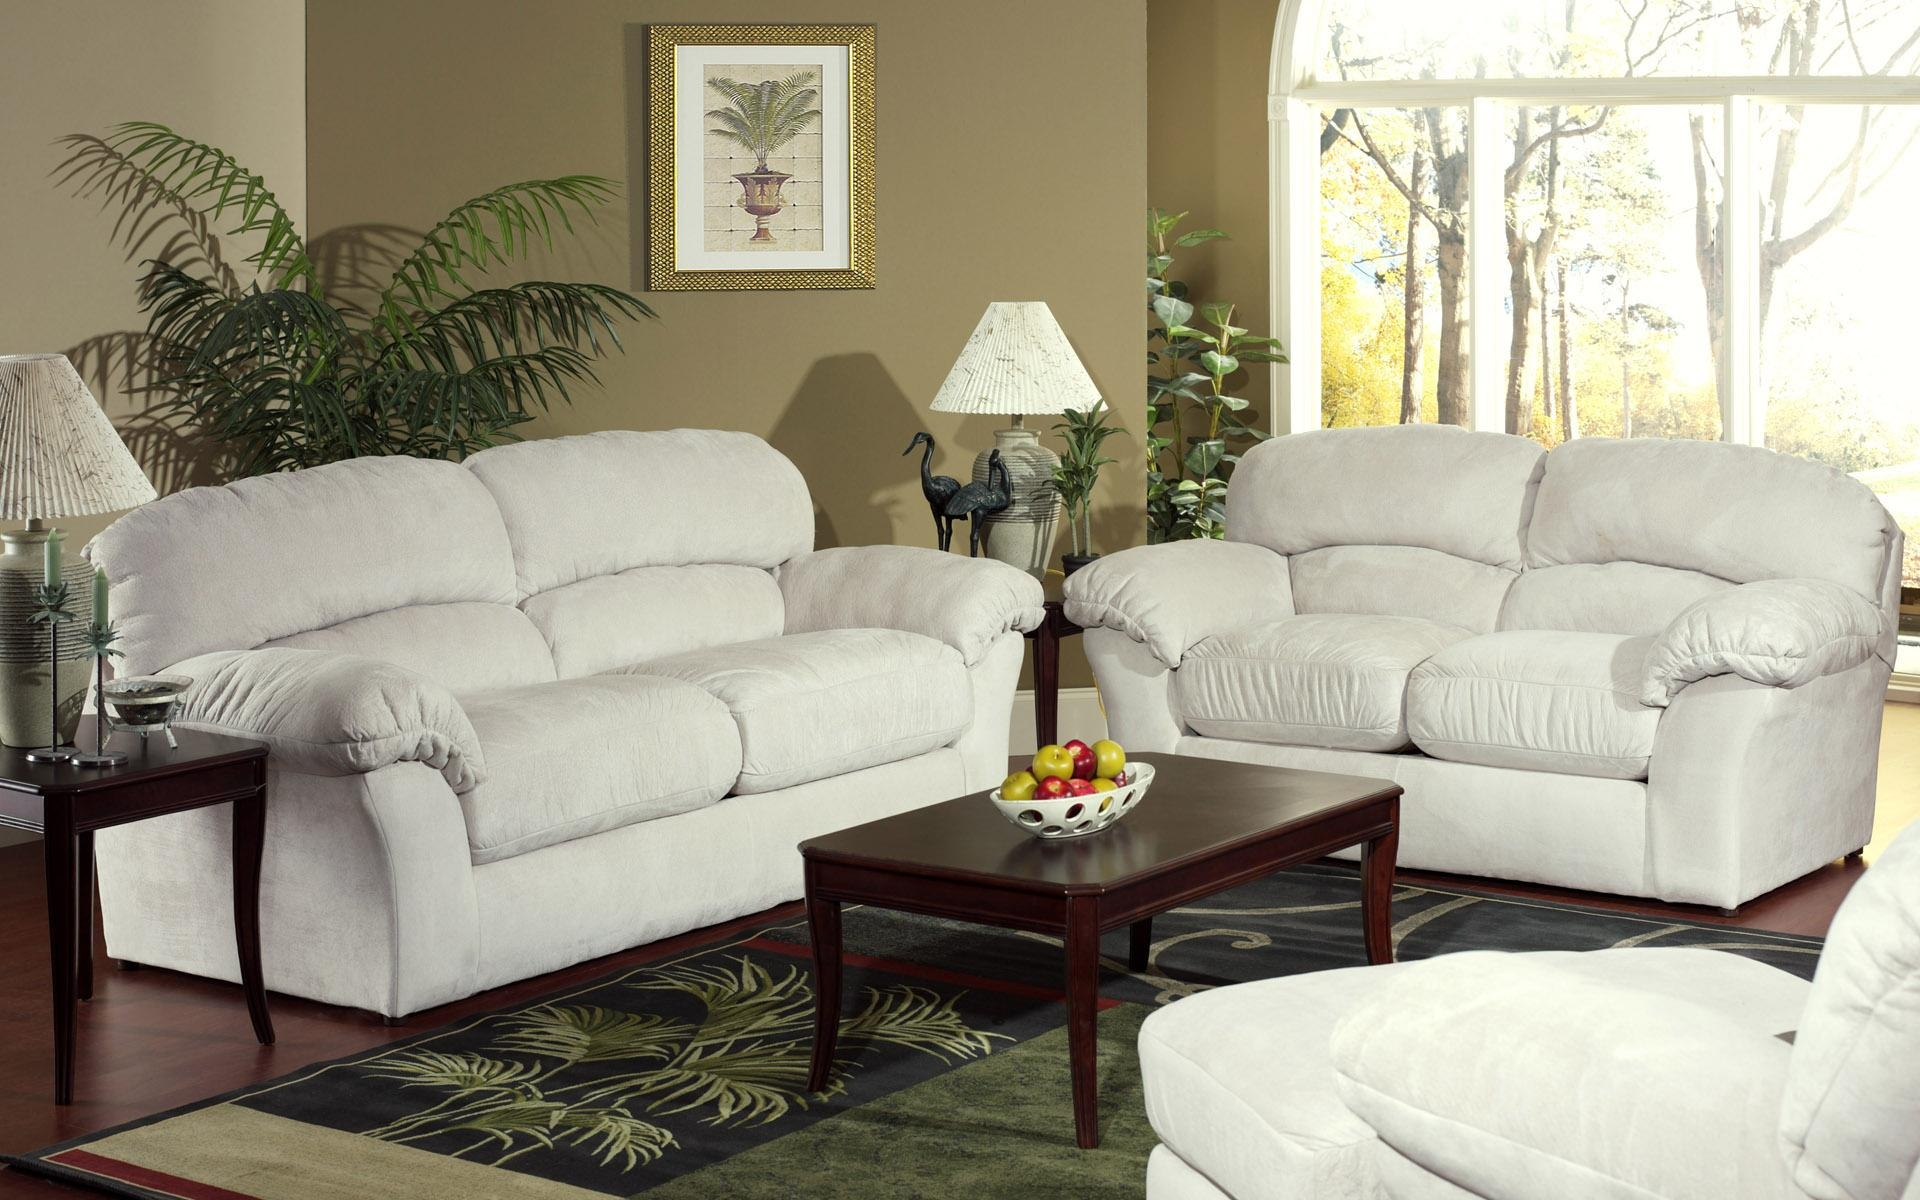 15 Awesome White Living Room Furniture For Your Living Space in Sofa Chairs For Living Room